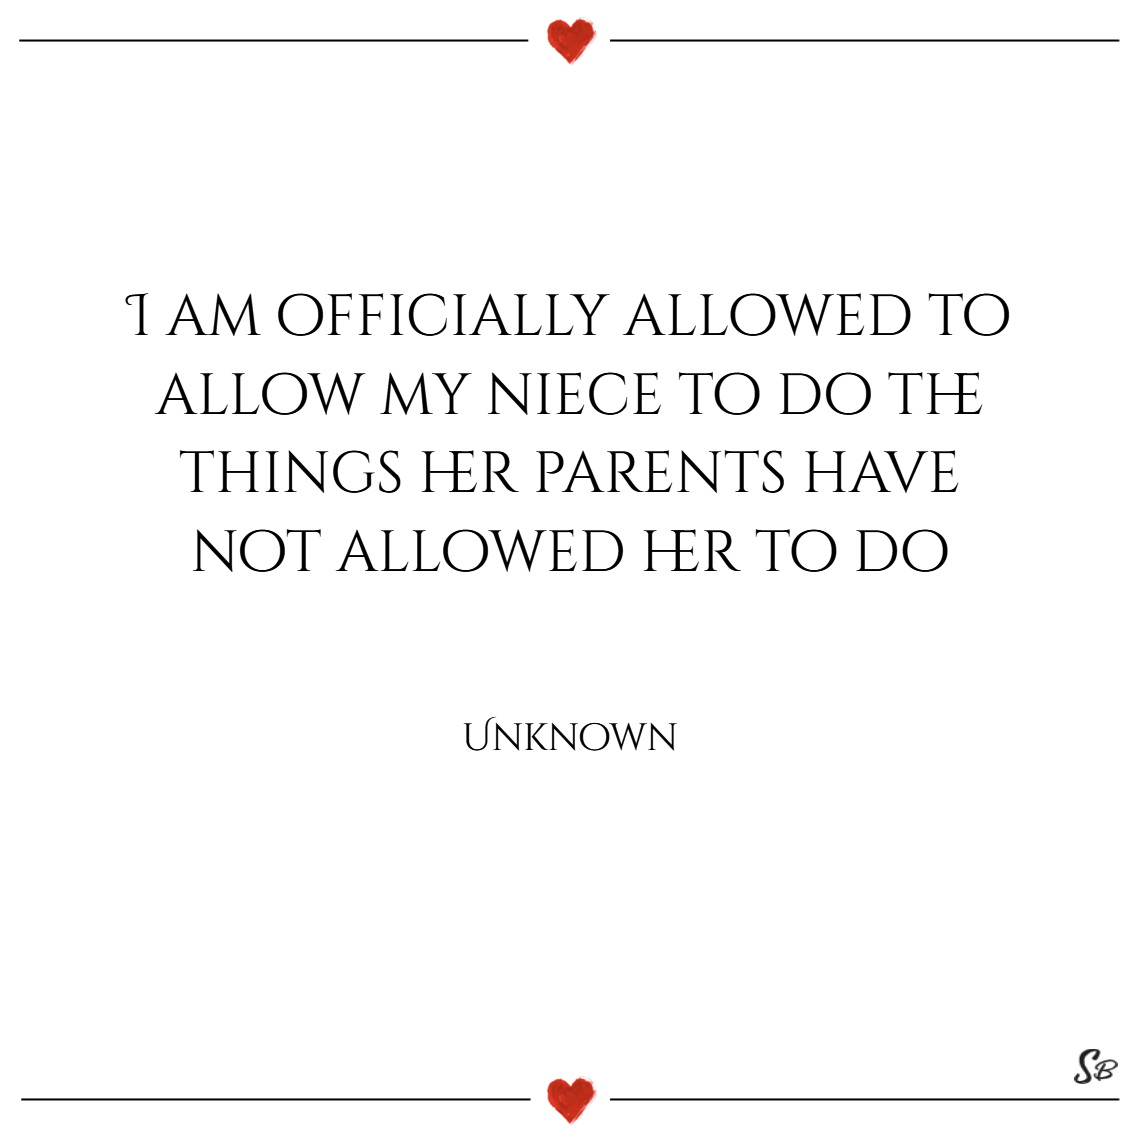 I am officially allowed to allow my niece to do the things her parents have not allowed her to do. – unknown